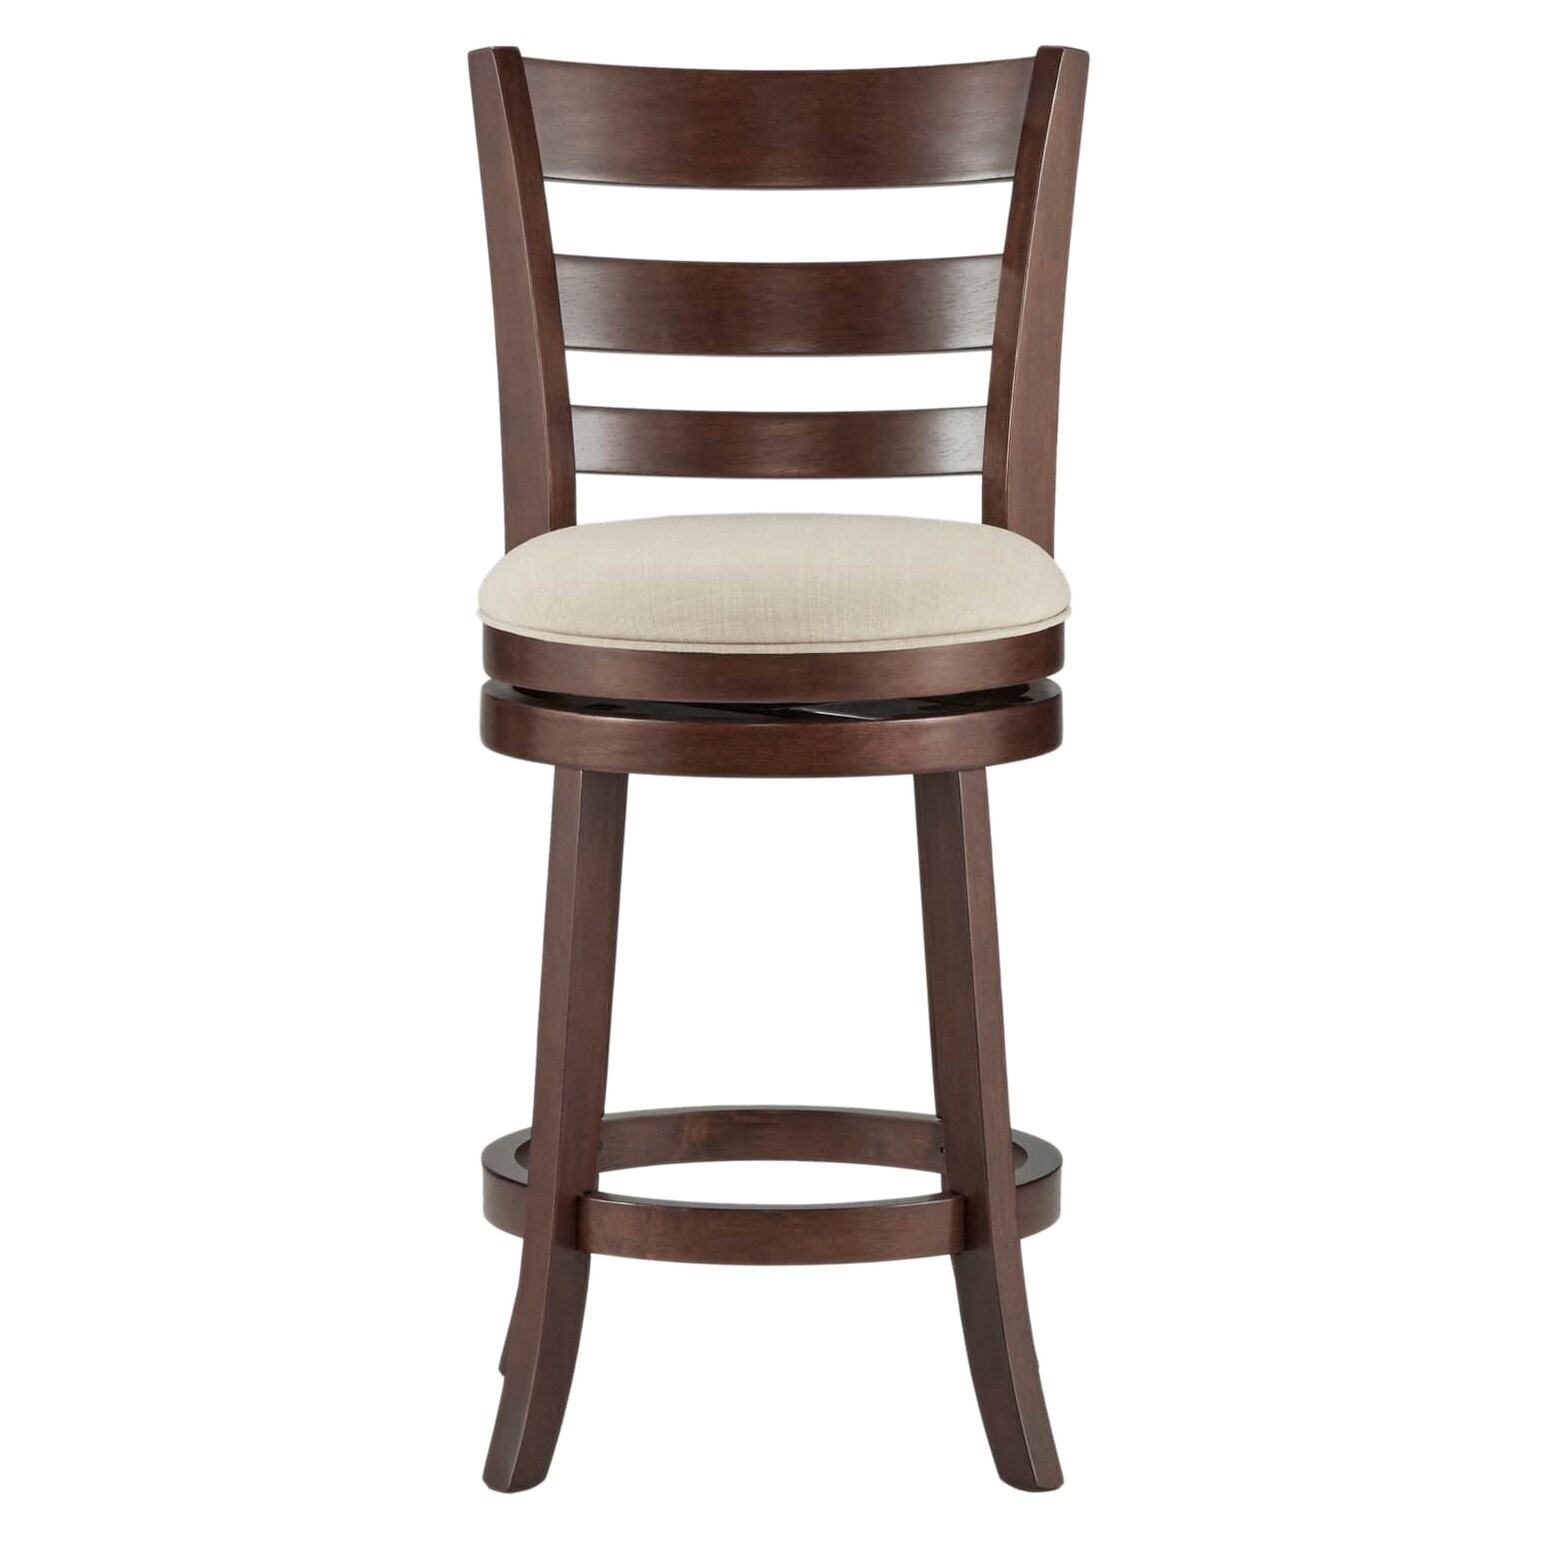 Counter Height Chairs With Arms Details About Verona Linen Ladder Back Swivel 24 Inch High Back Counter Height Stool By